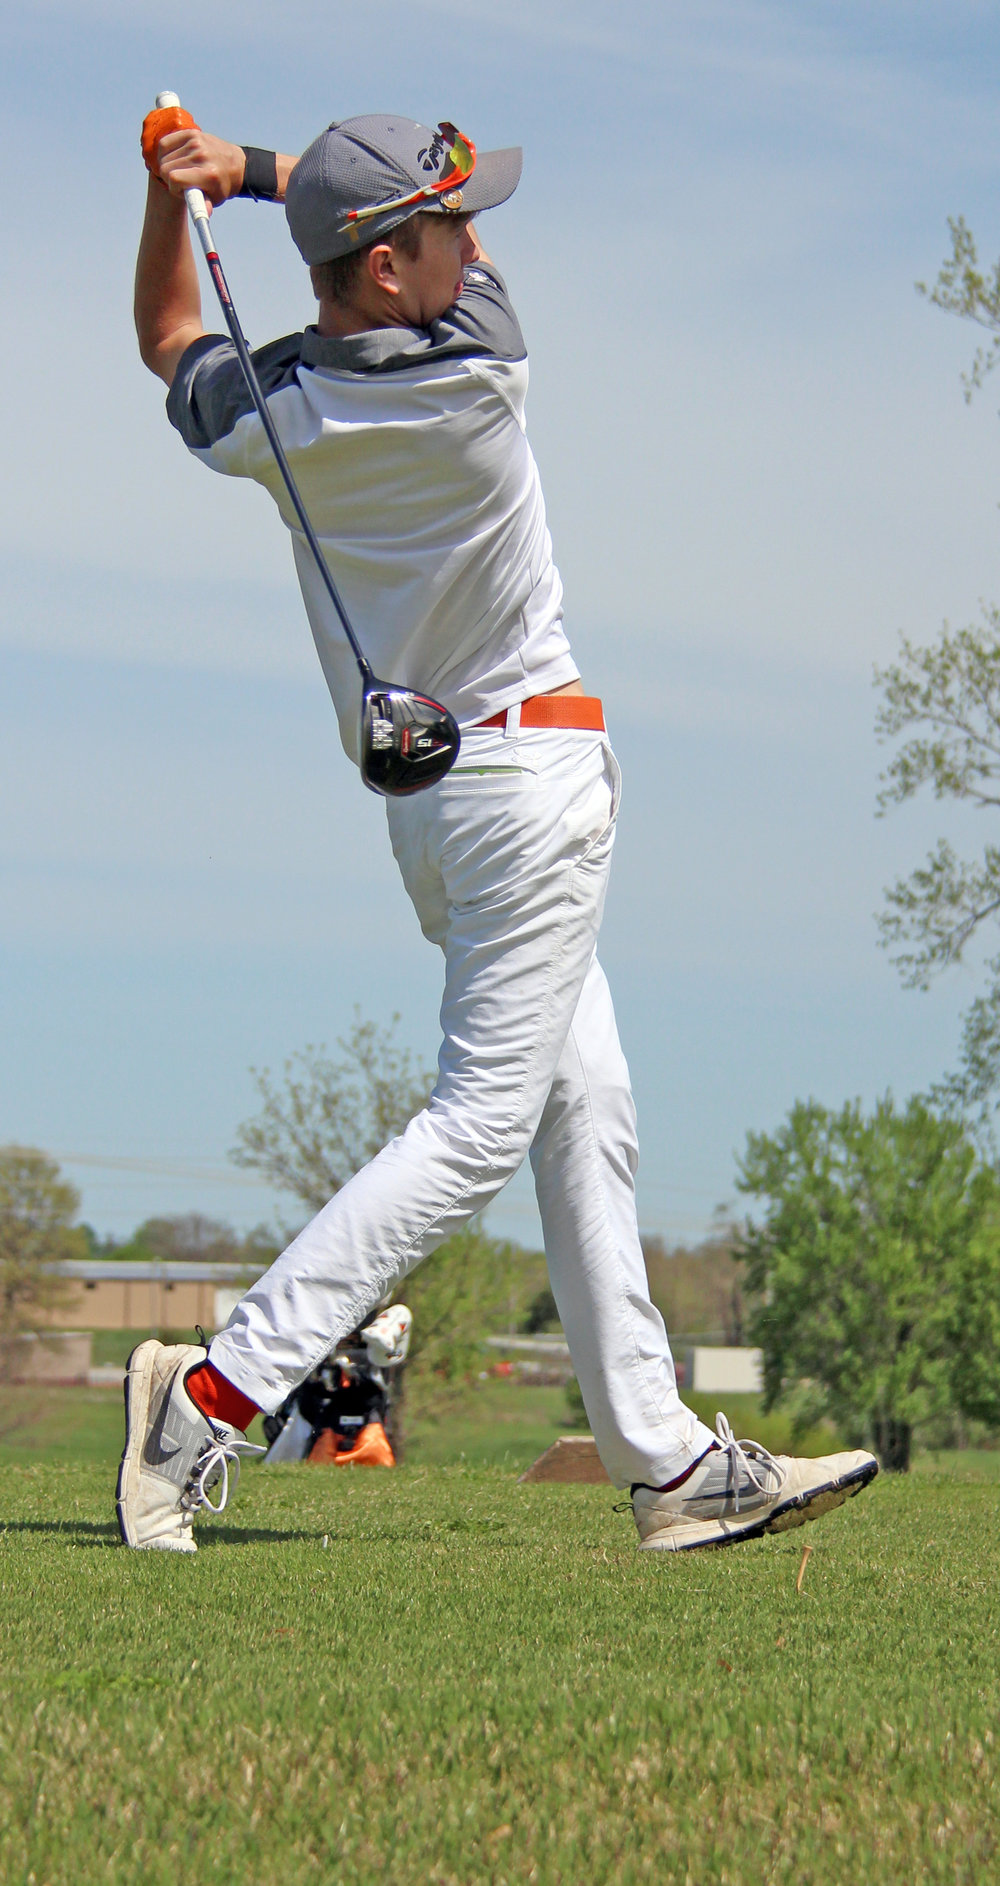 ROSS MARTIN/Citizen photo Platte County senior Payton Boekhout watches his drive on No. 17 during the Pirate Invitational on Monday, April 17 at Shiloh Springs Golf Course.